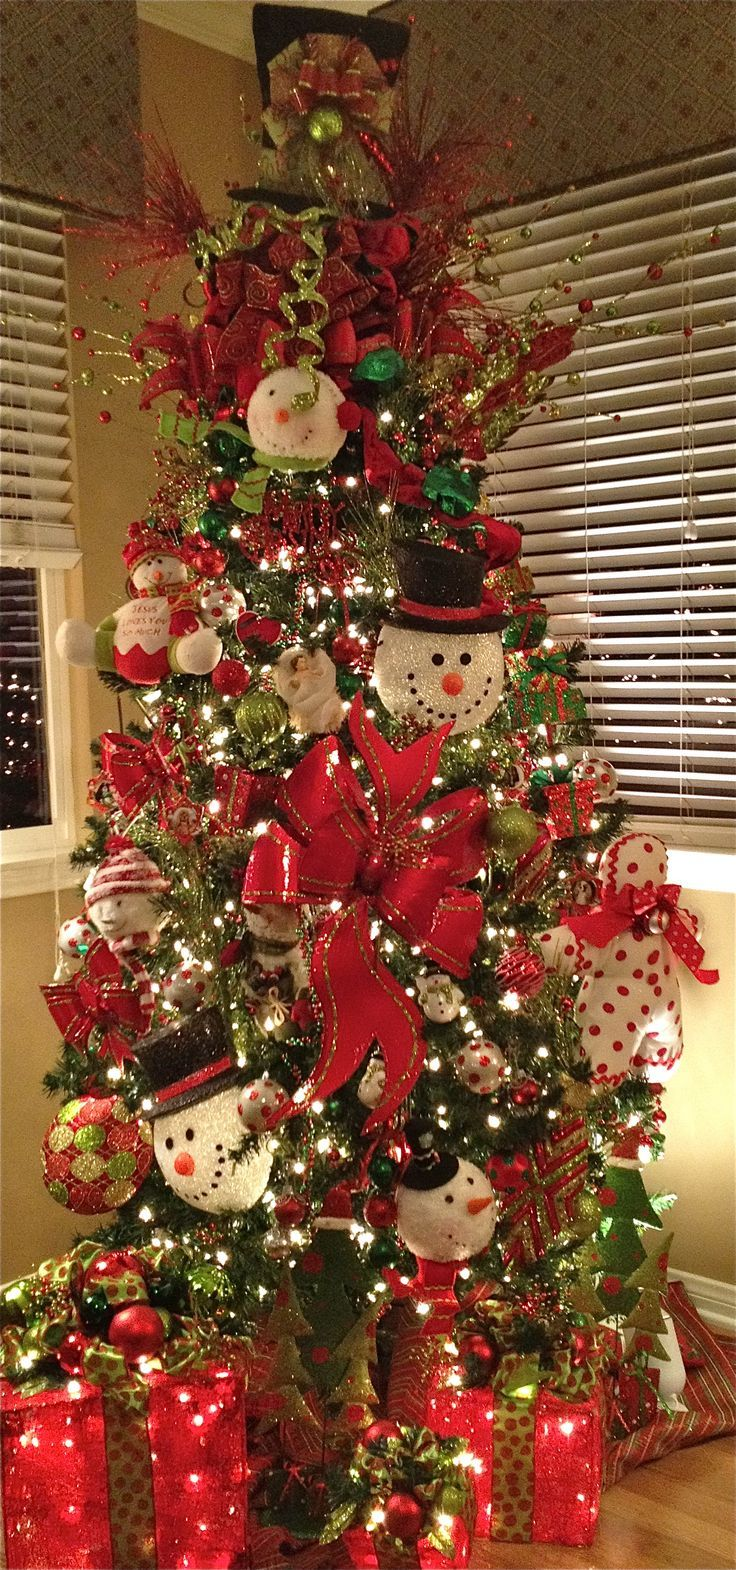 Green christmas tree with red decorations - Snowman Christmas Tree Christmas Trees